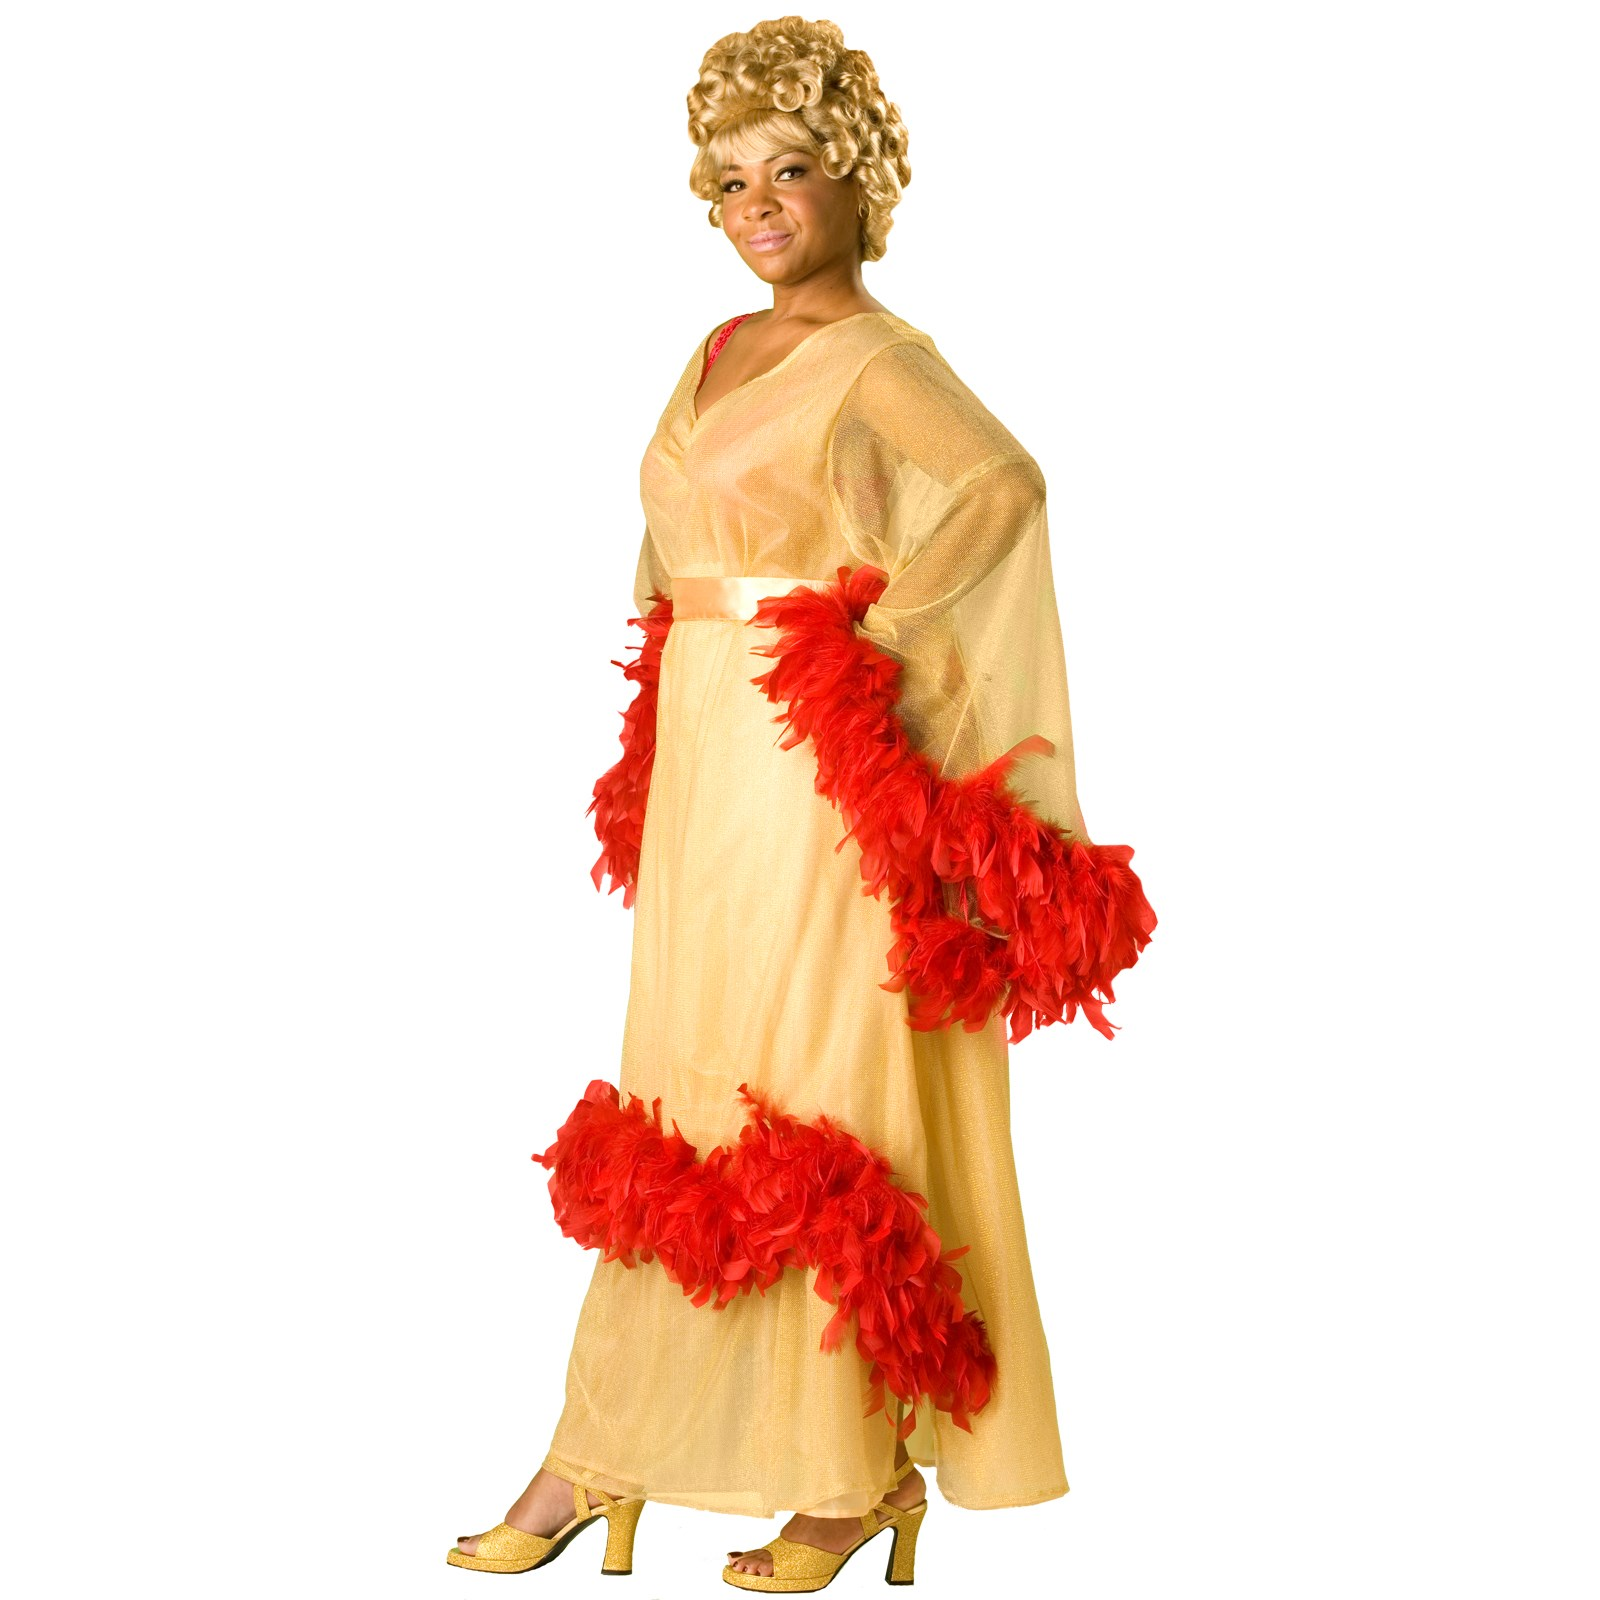 House decorations for halloween - Hairspray Motormouth Maybelle Adult Plus Costume Buycostumes Com